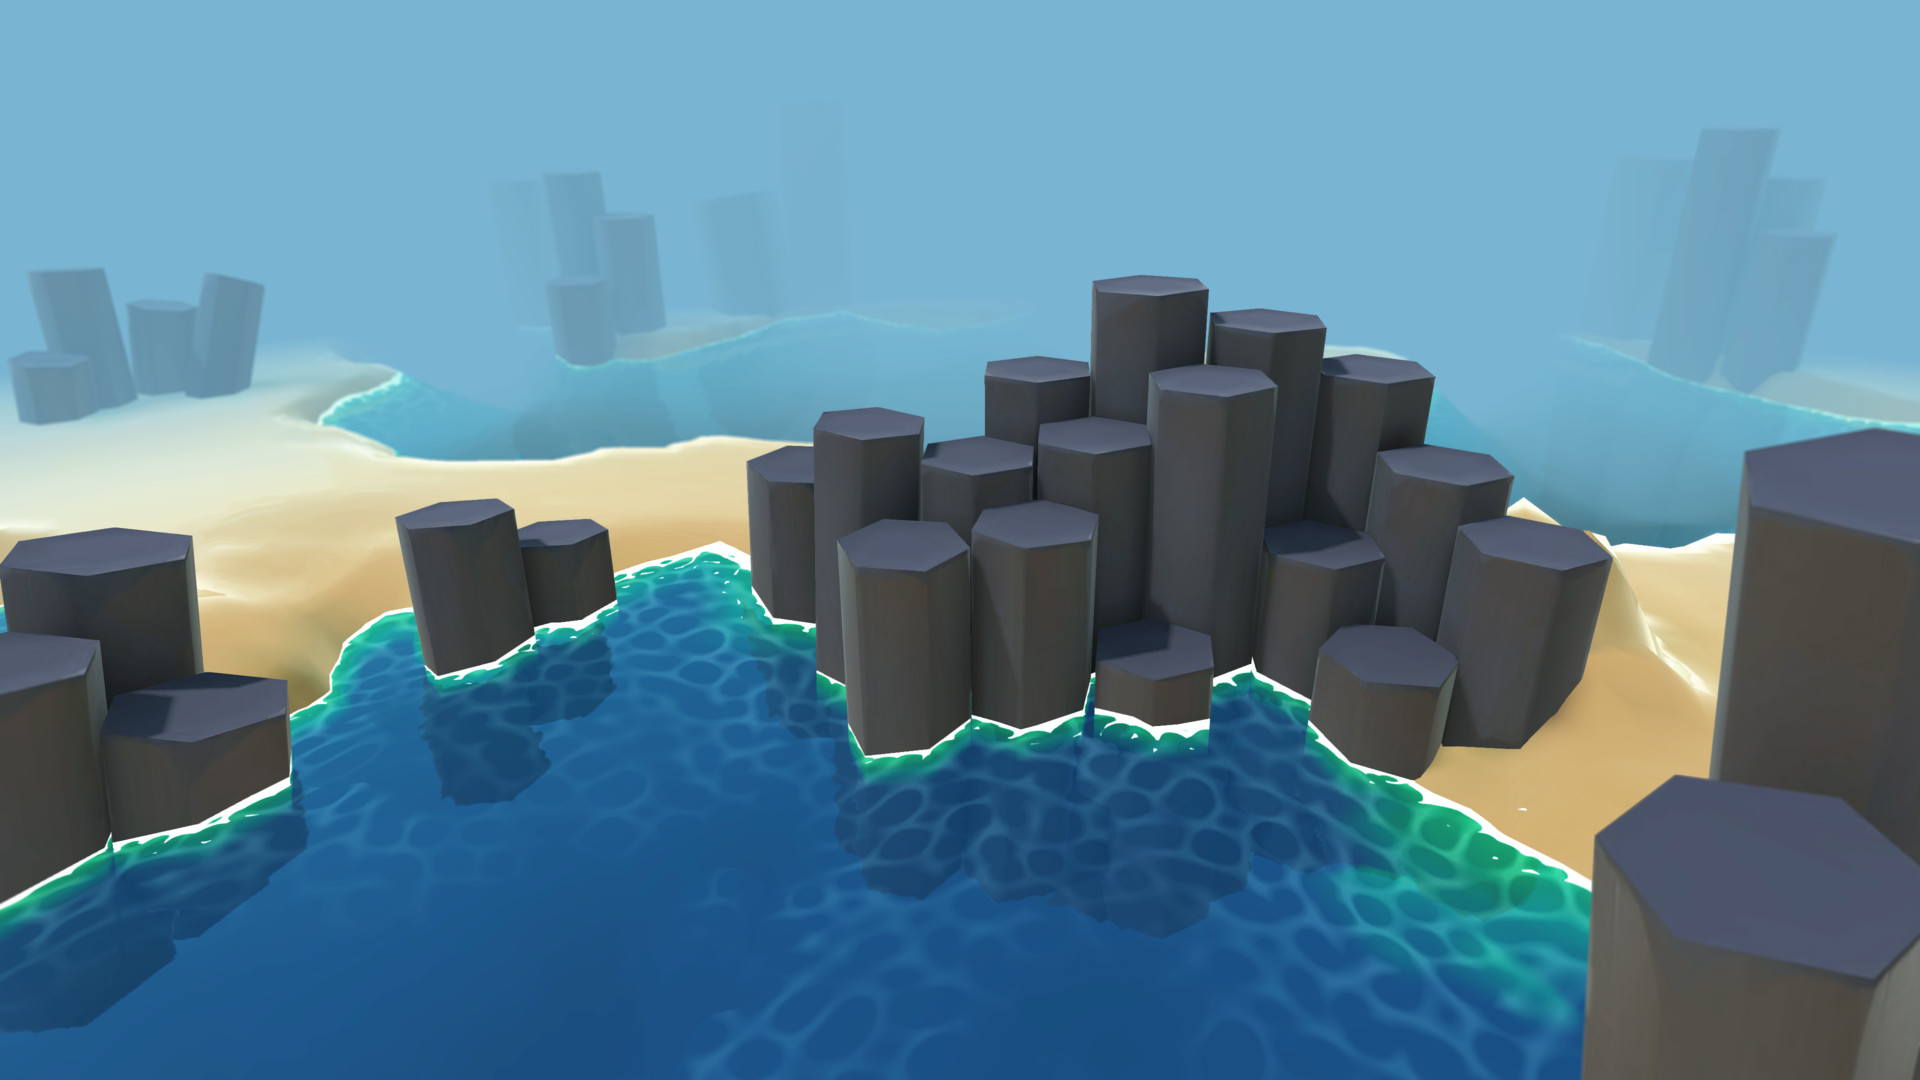 How do I make a water shader that has depth  - Unity Answers